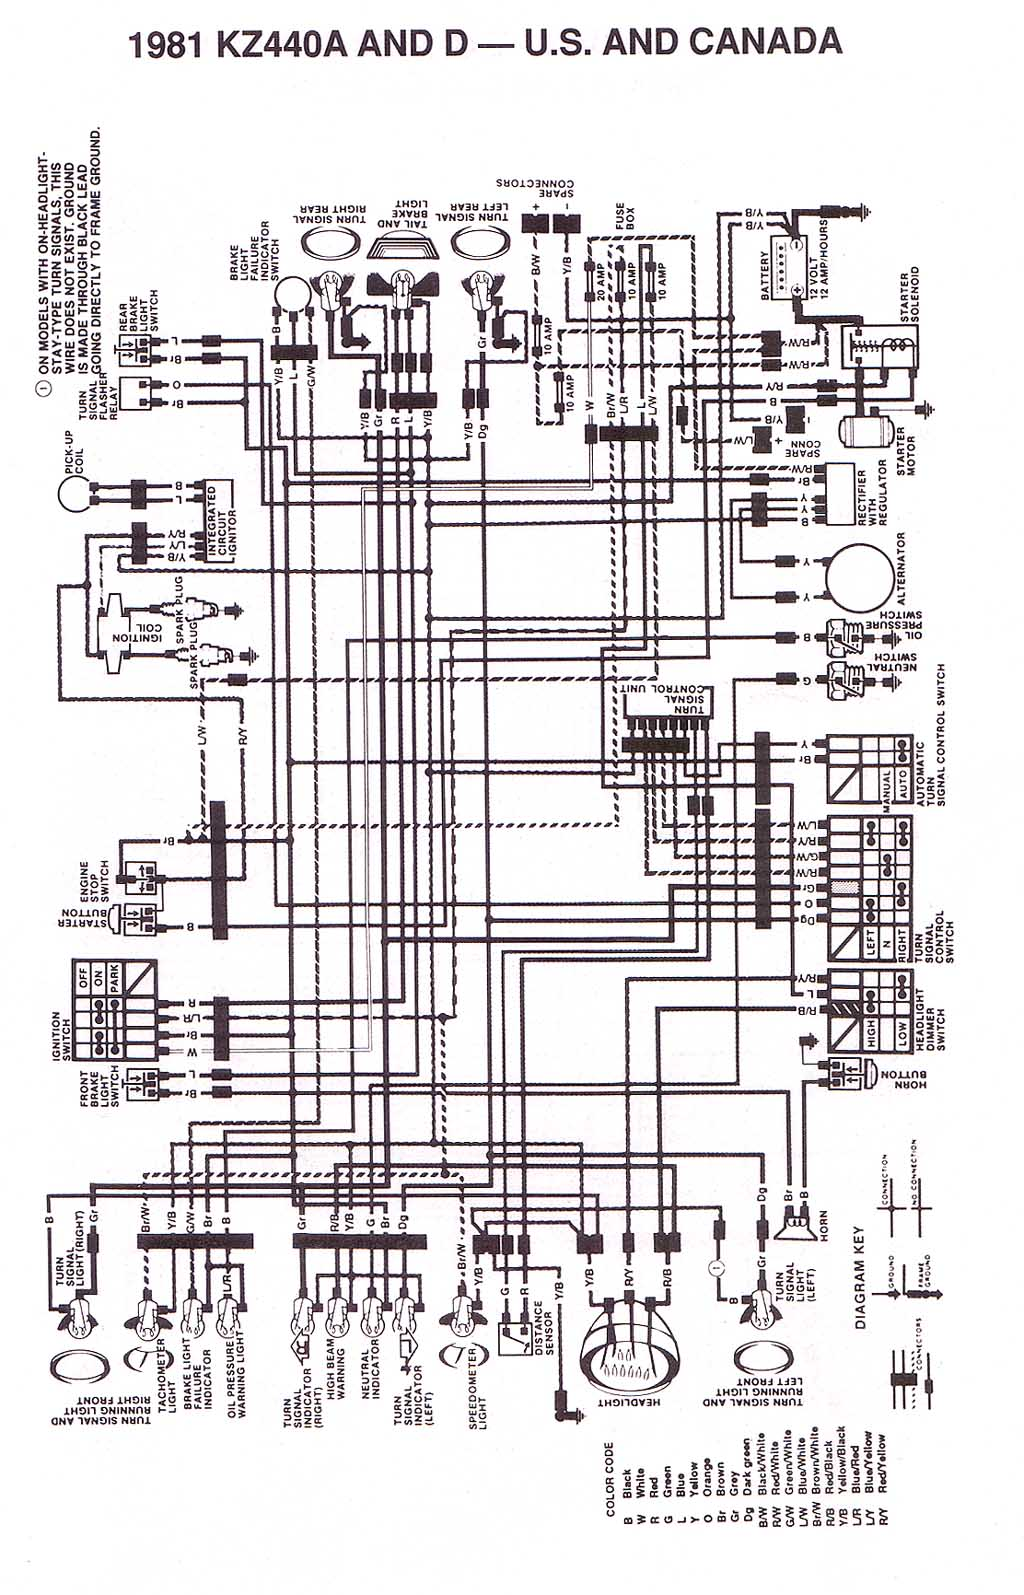 Kawasaki Ltd 440 Wiring Diagram Library Key Switch 1980 Trusted Diagrams U2022 Rh Caribbeanblues Co Case Tractor